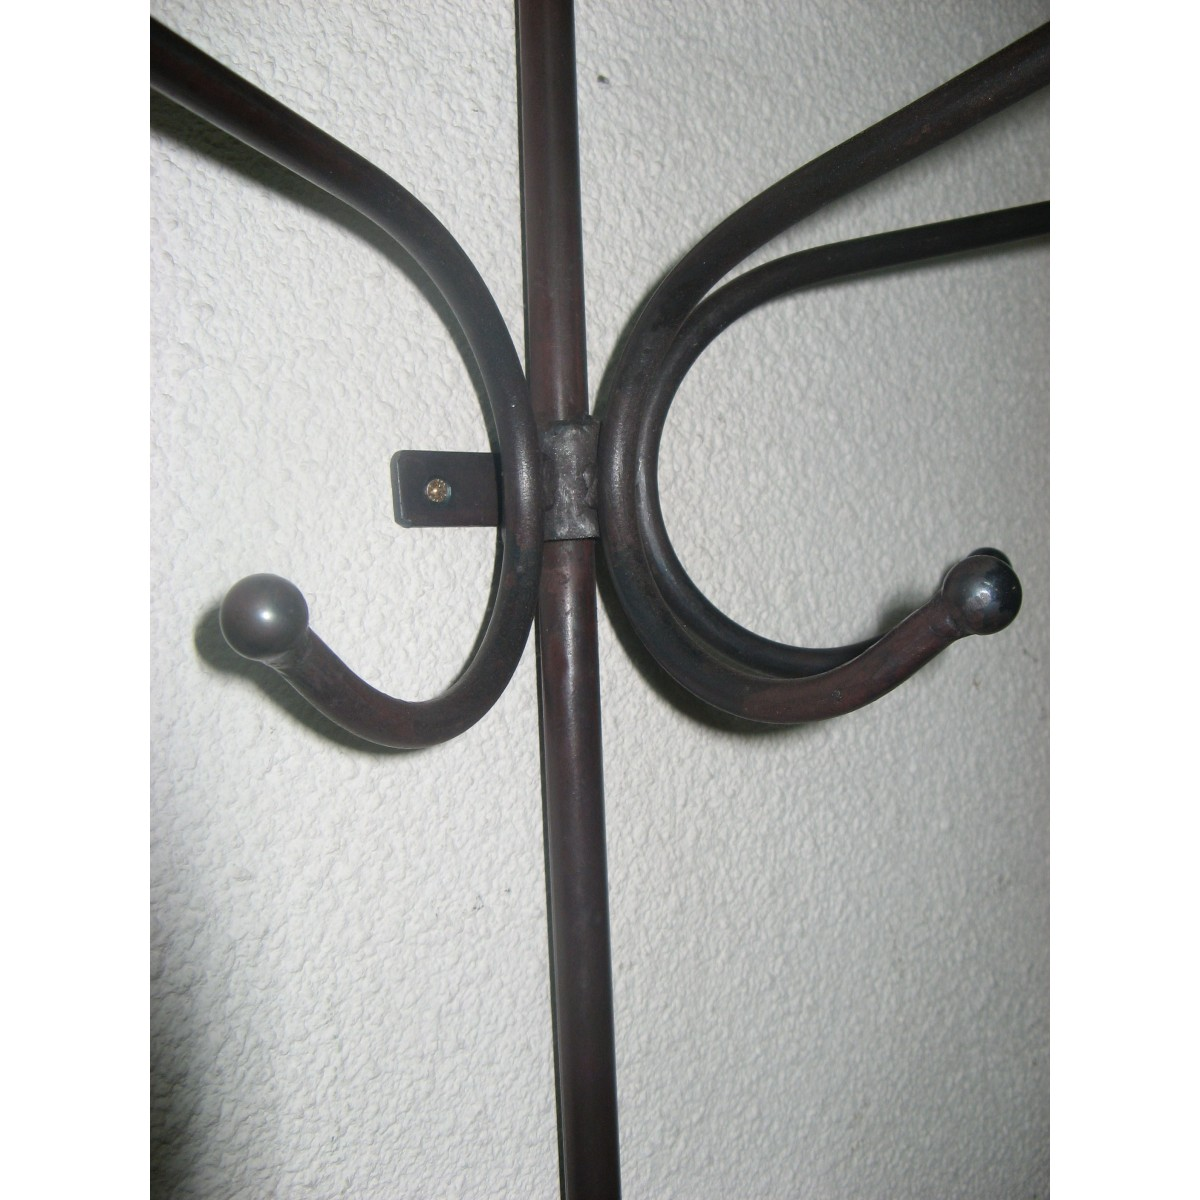 Porte manteaux m tal murale coloris marron style industriel for Porte salon fer forge